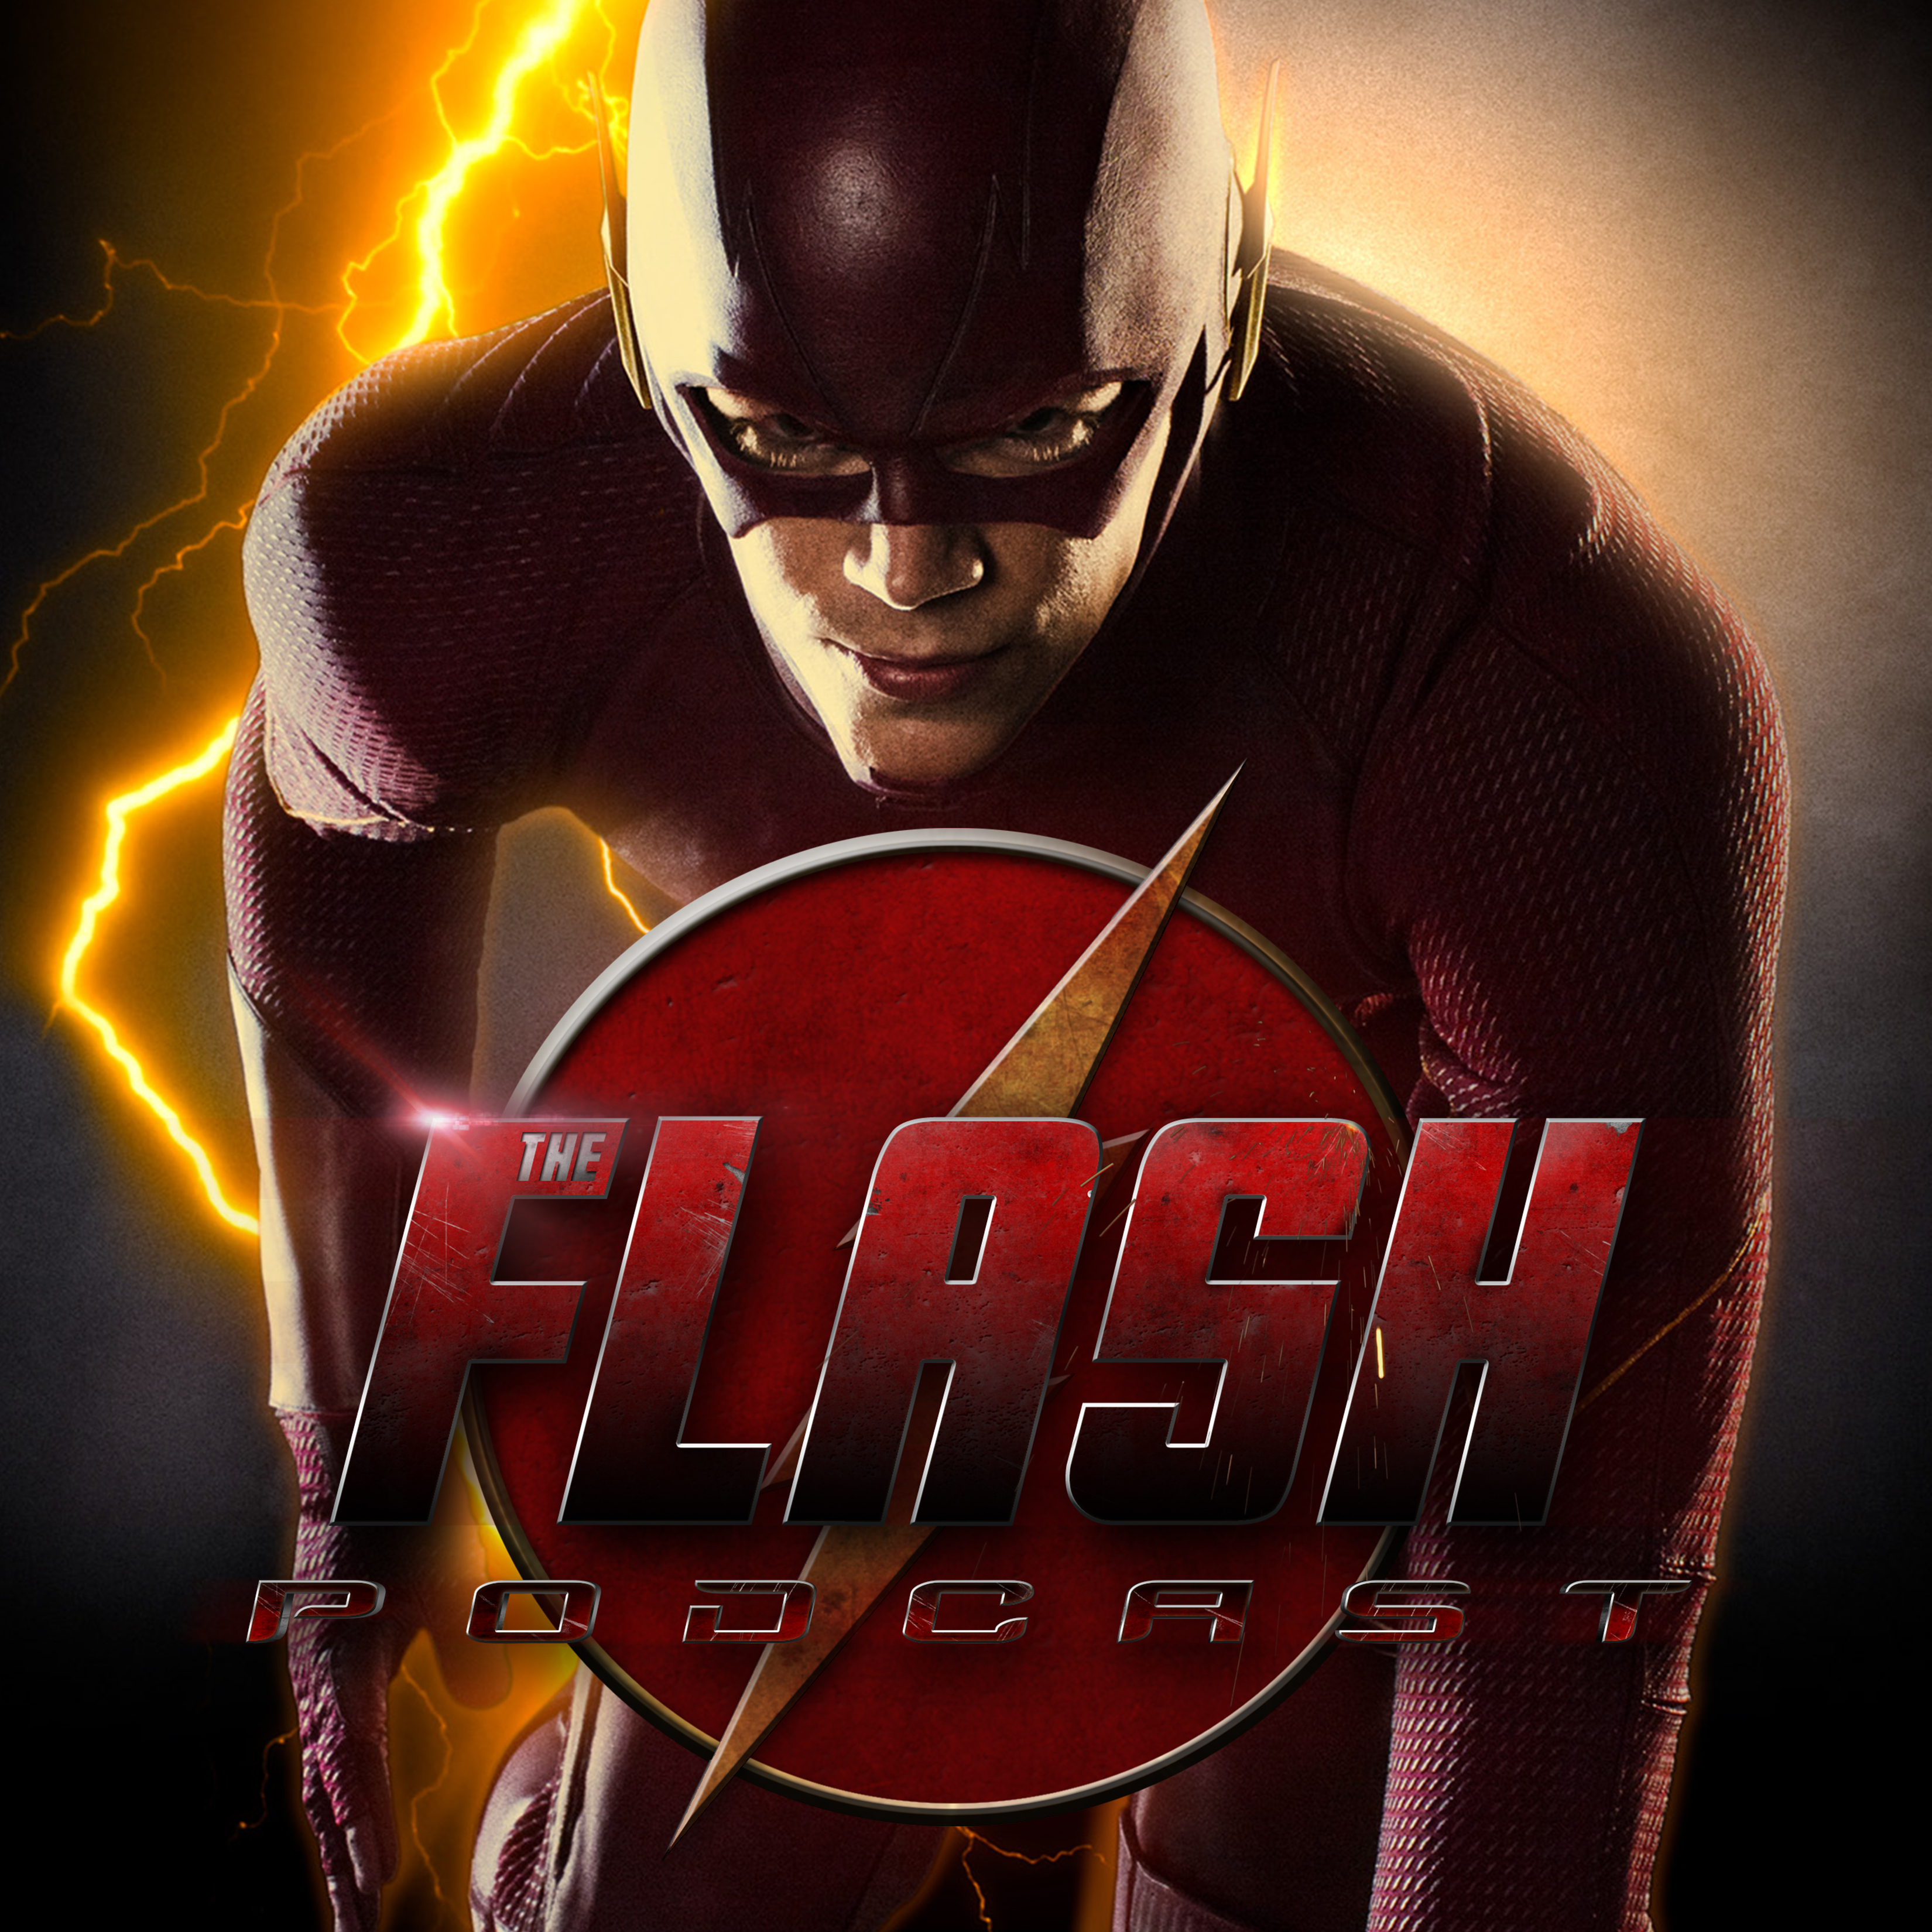 The Flash Podcast Season 1.5 – Post-Comic-Con 2015